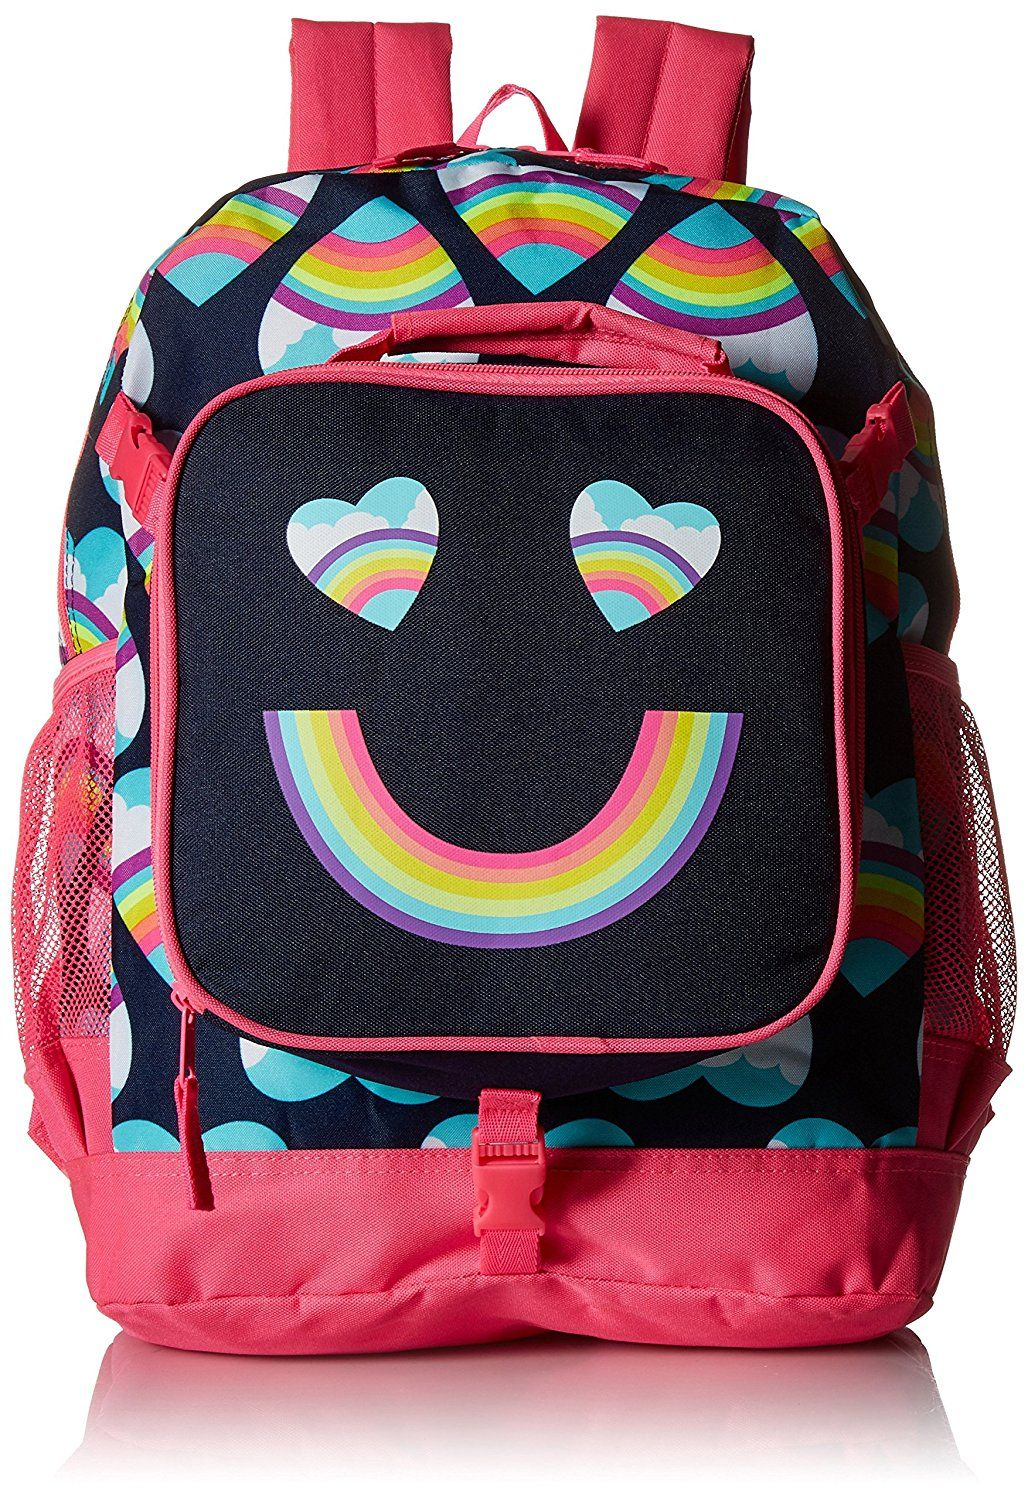 The Children's Place Girls' Rainbow Heart Backpack >>> Read more reviews of the product by visiting the link on the image.